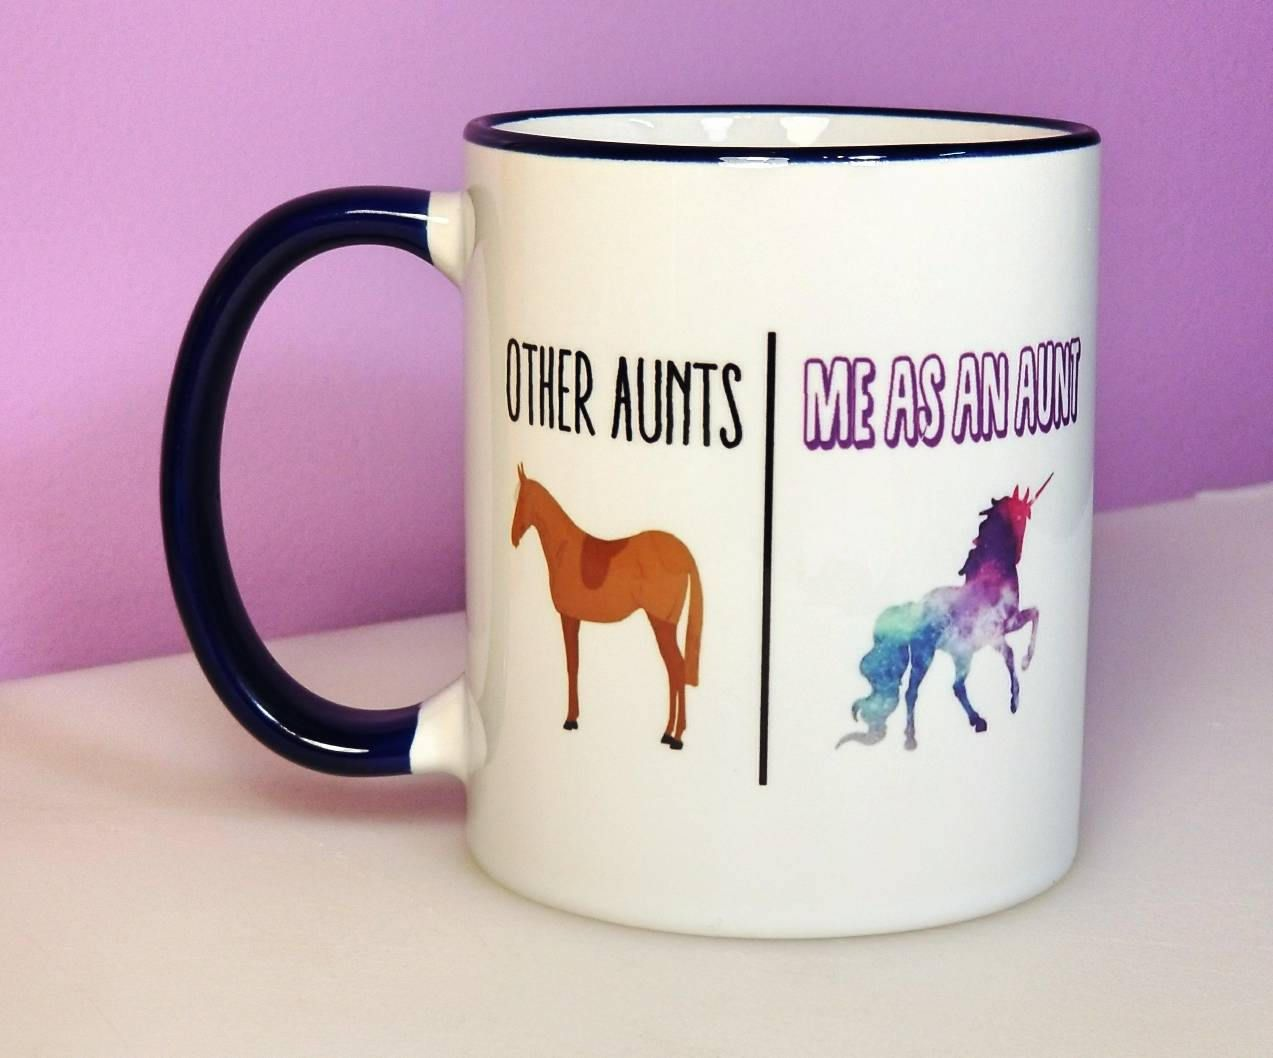 aunt mug unicorn aunt funny aunt gift aunt gift funny mugs aunt christmas gift unicorn aunt mug christmas gifts for aunts by paggcreations on - Christmas Gifts For Aunts